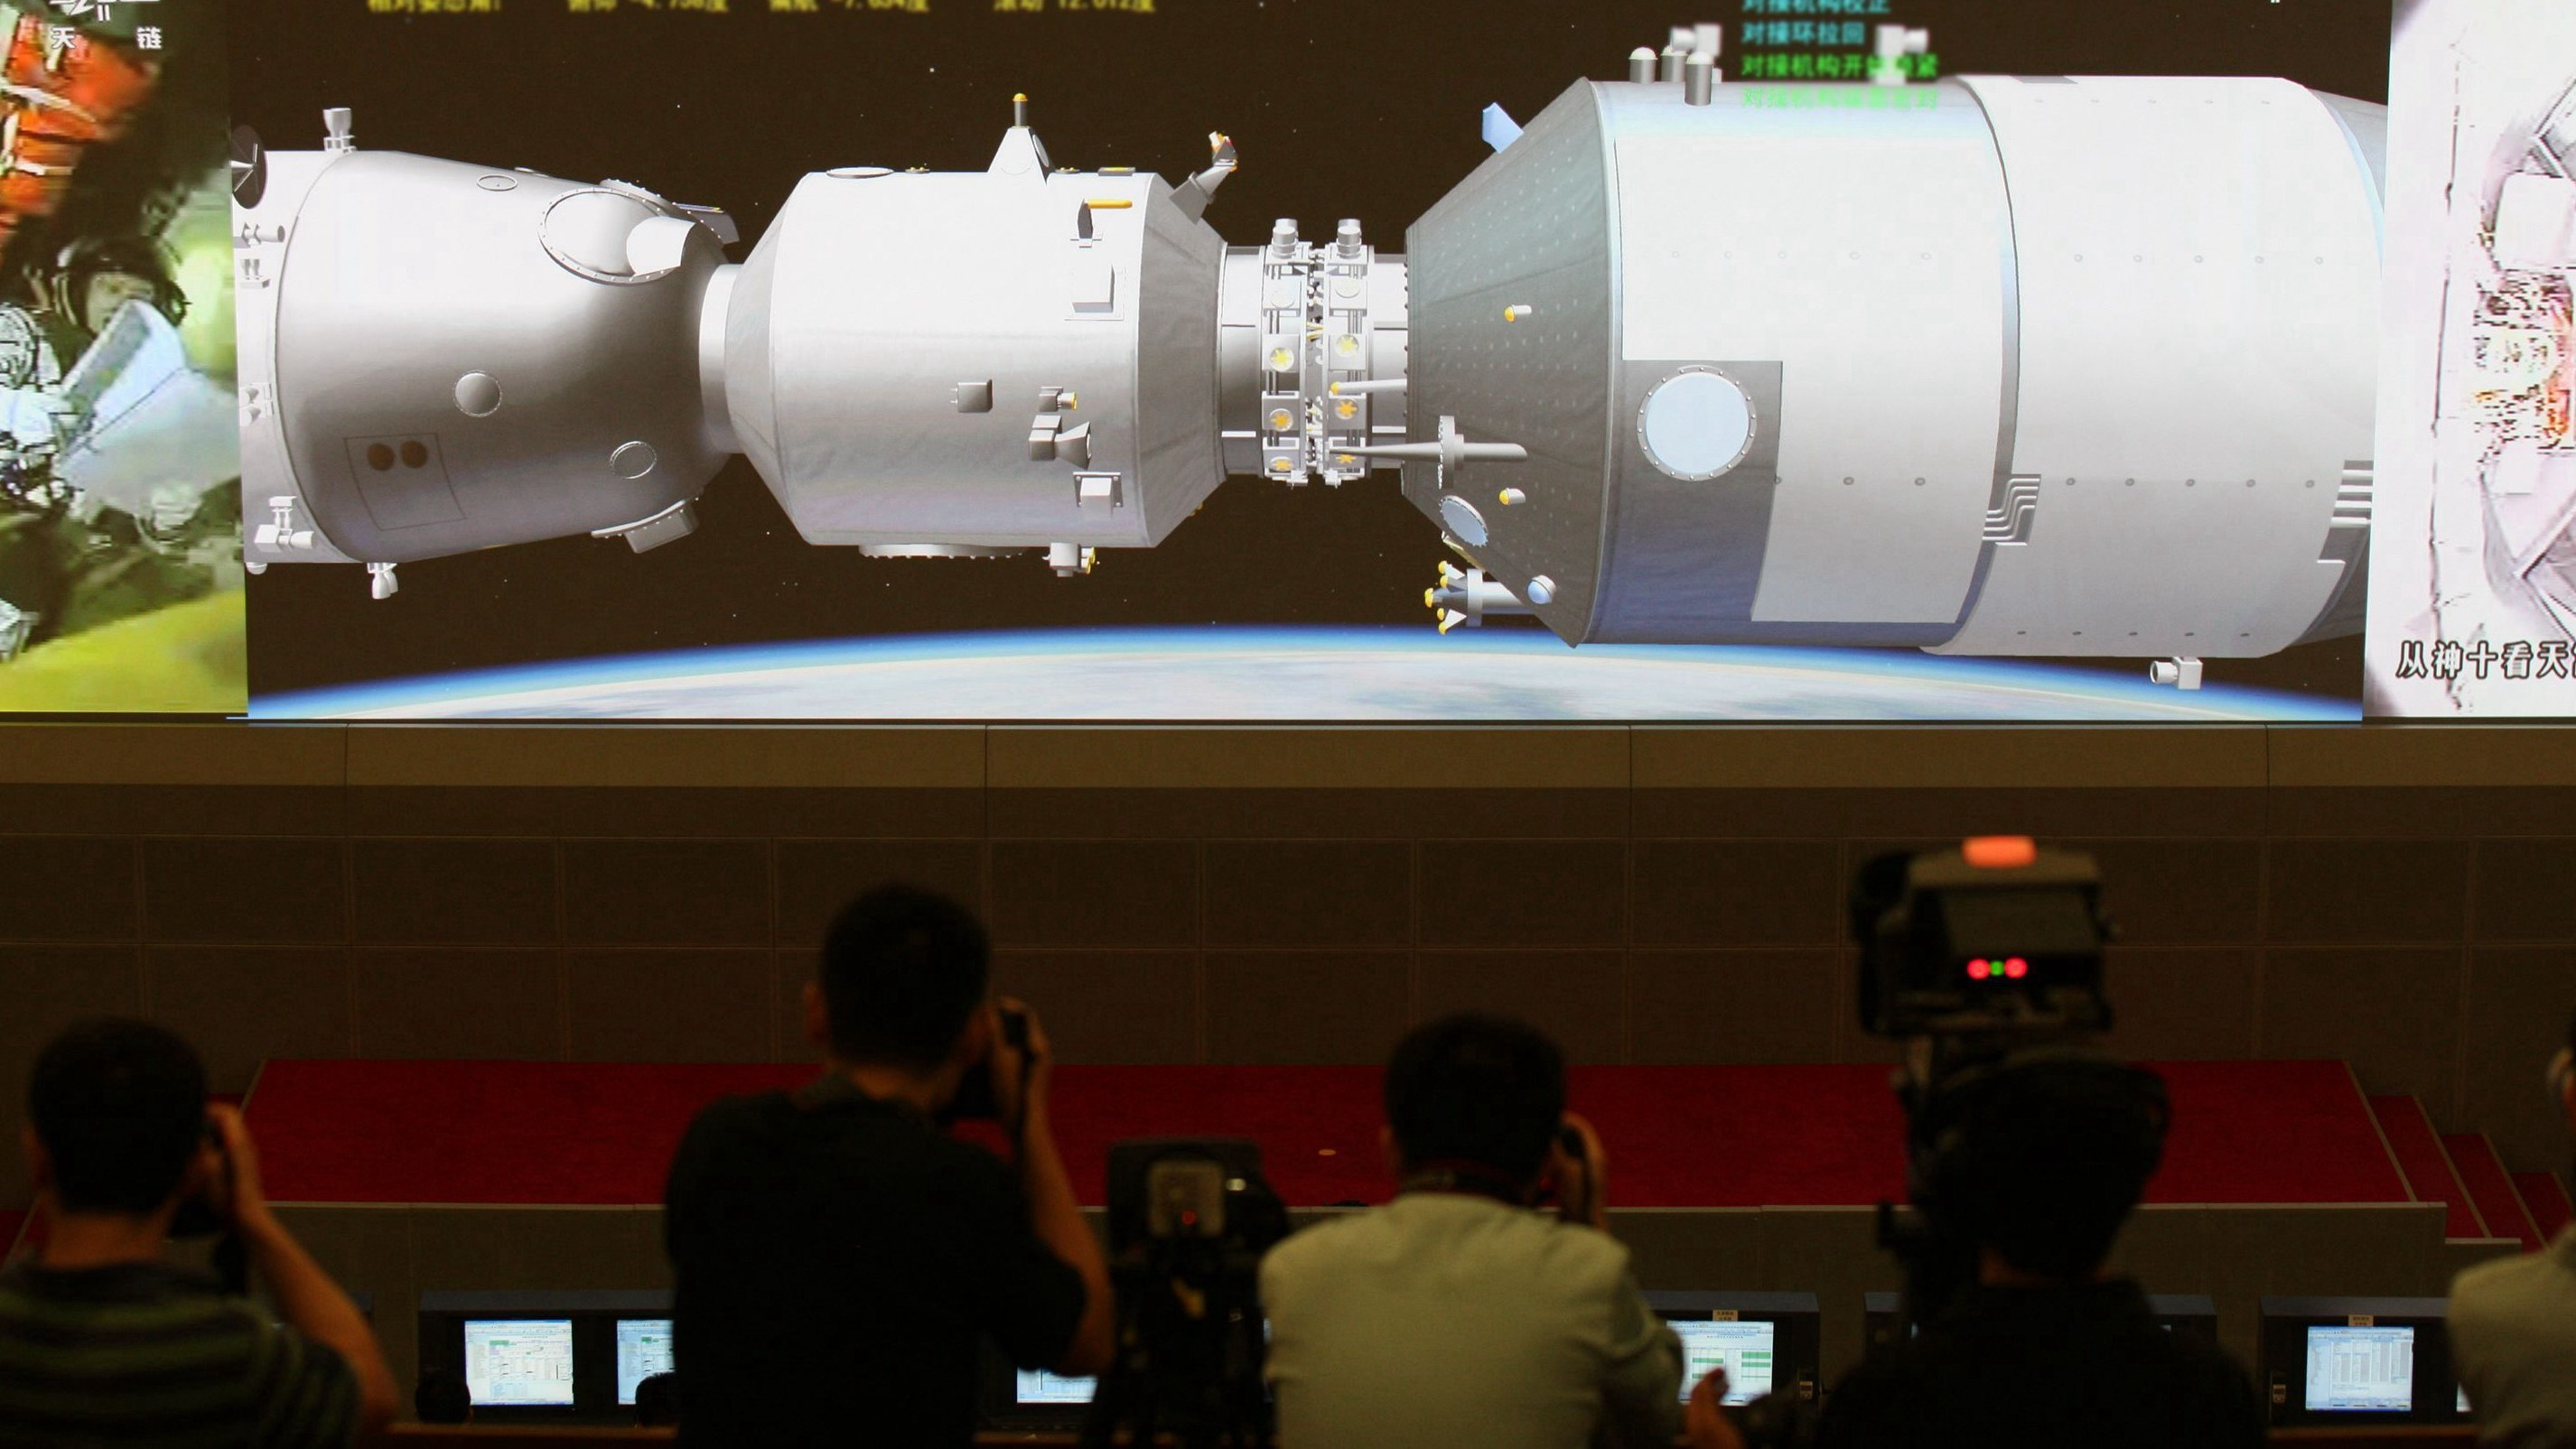 China says space station to re-enter atmosphere over South Atlantic on Monday